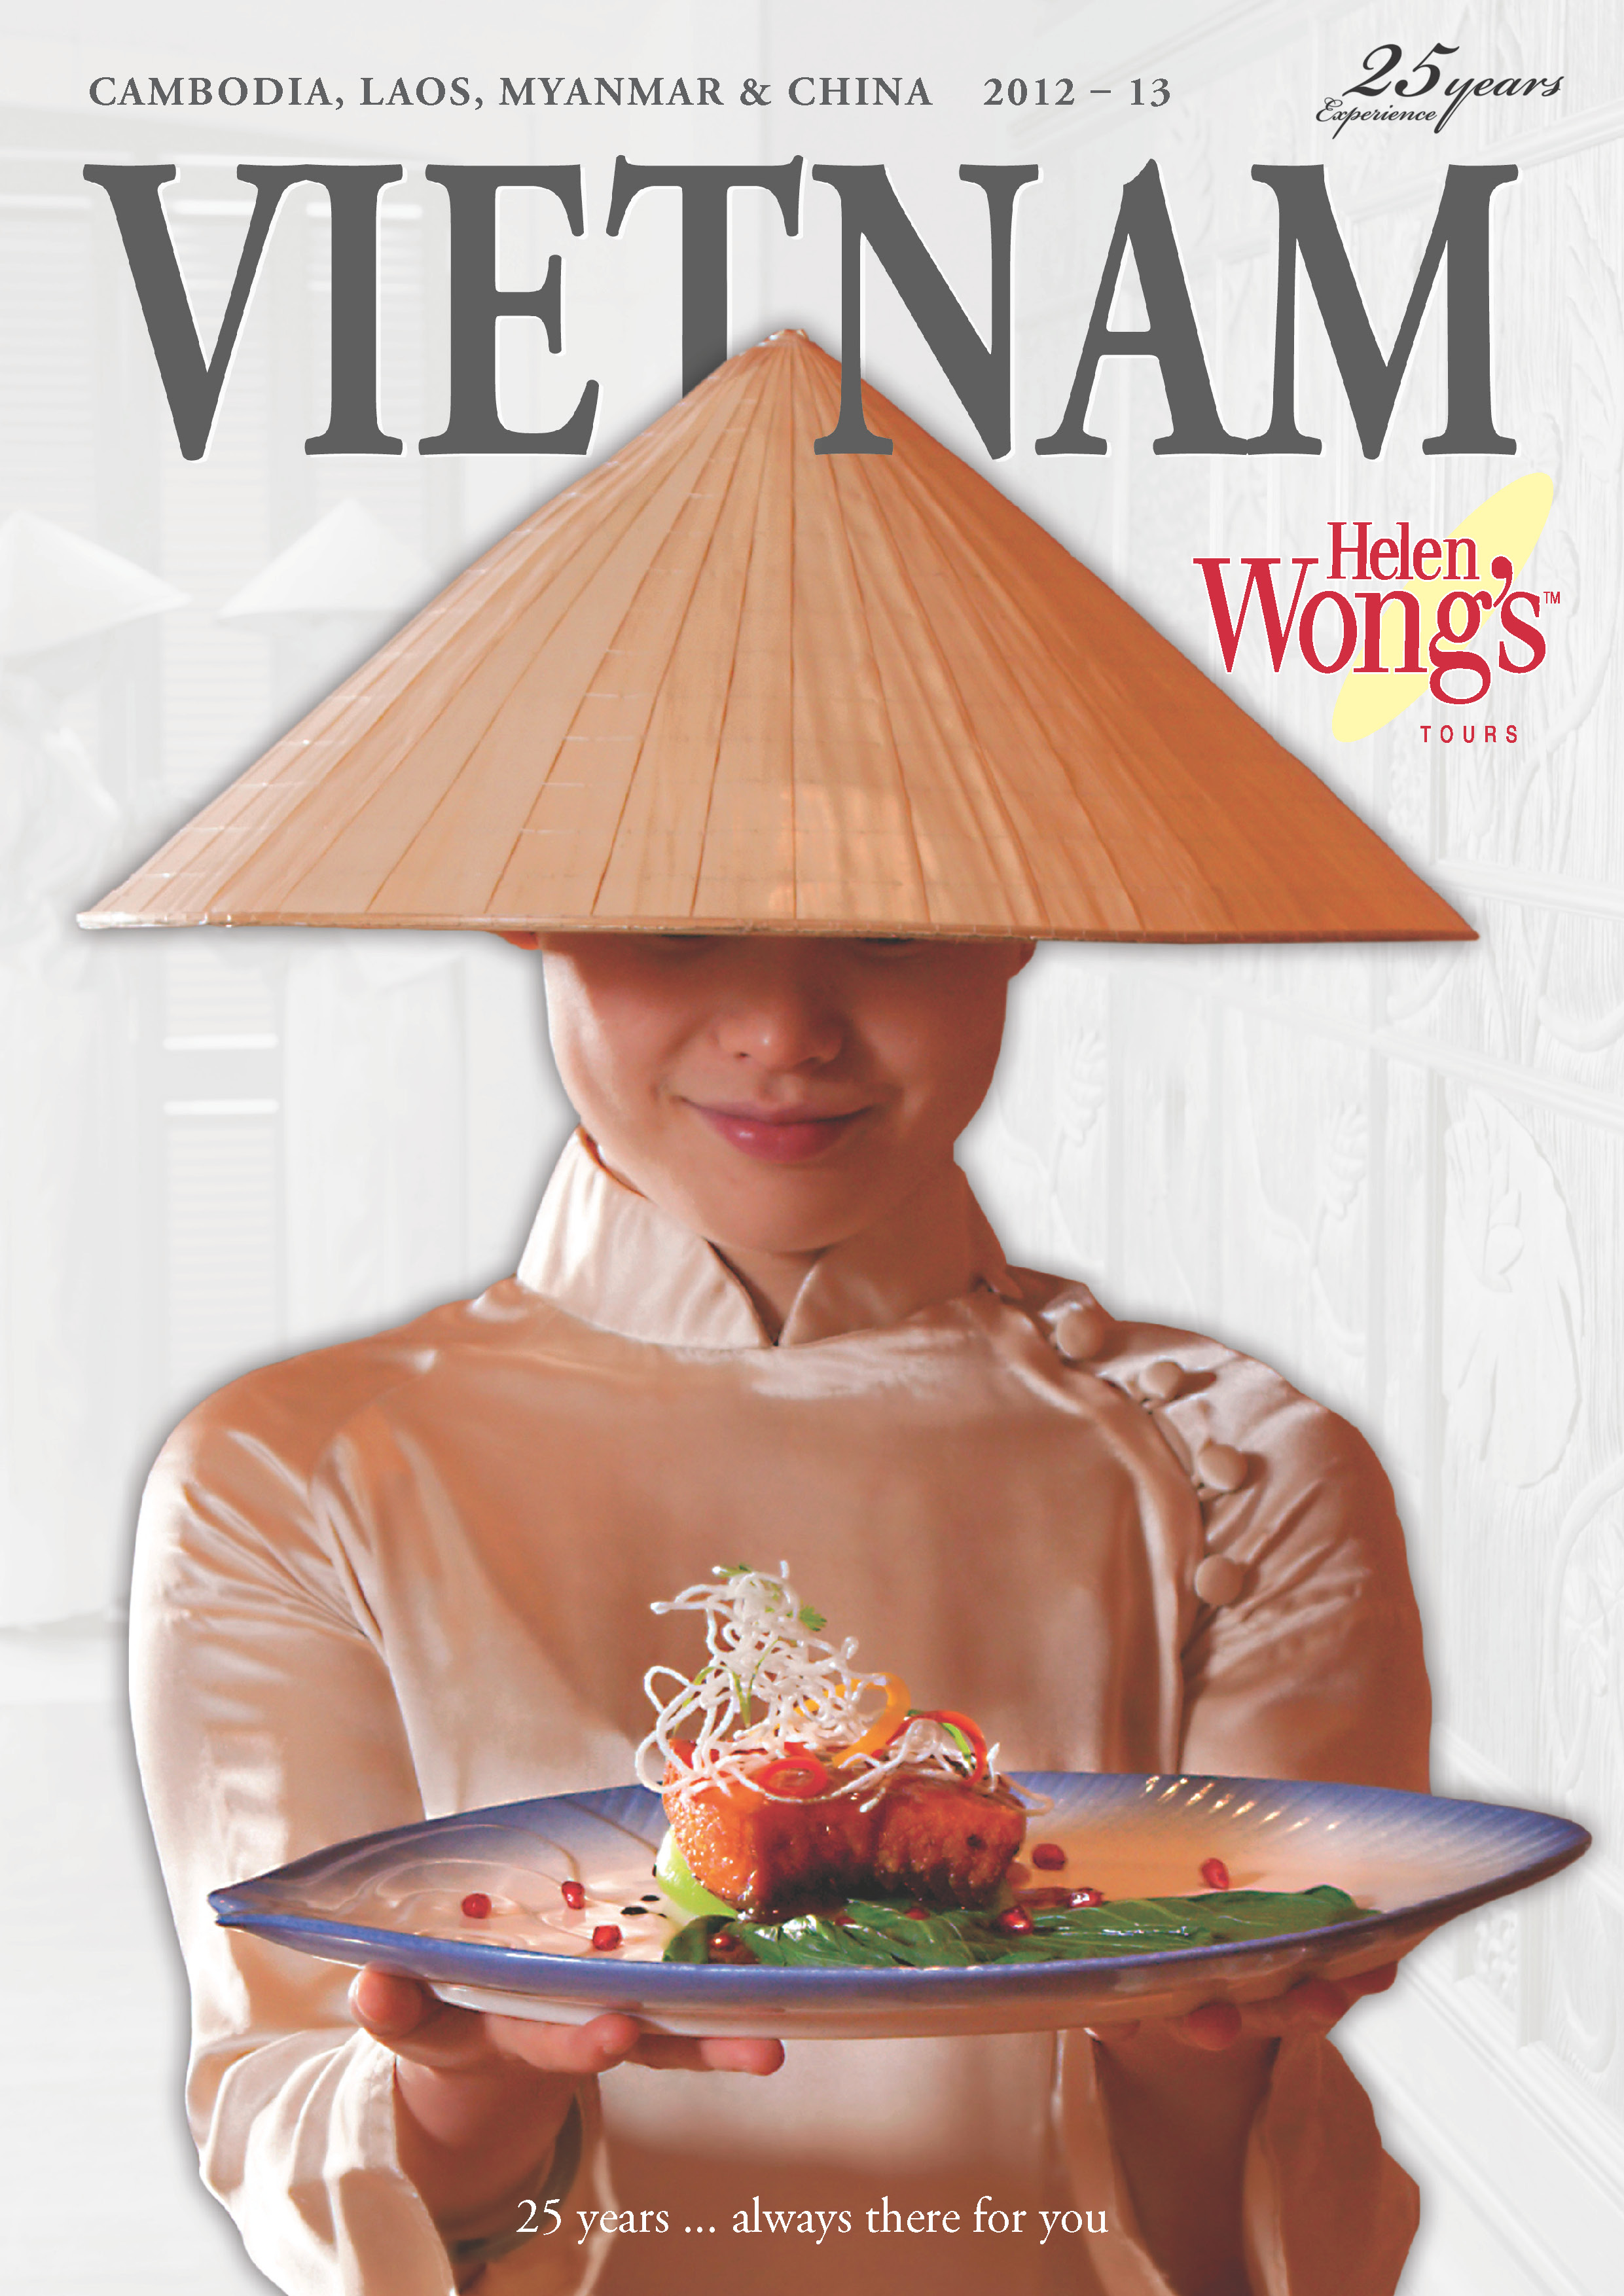 Travel Daily | Helen Wong's Tours - Vietnam 2012/13